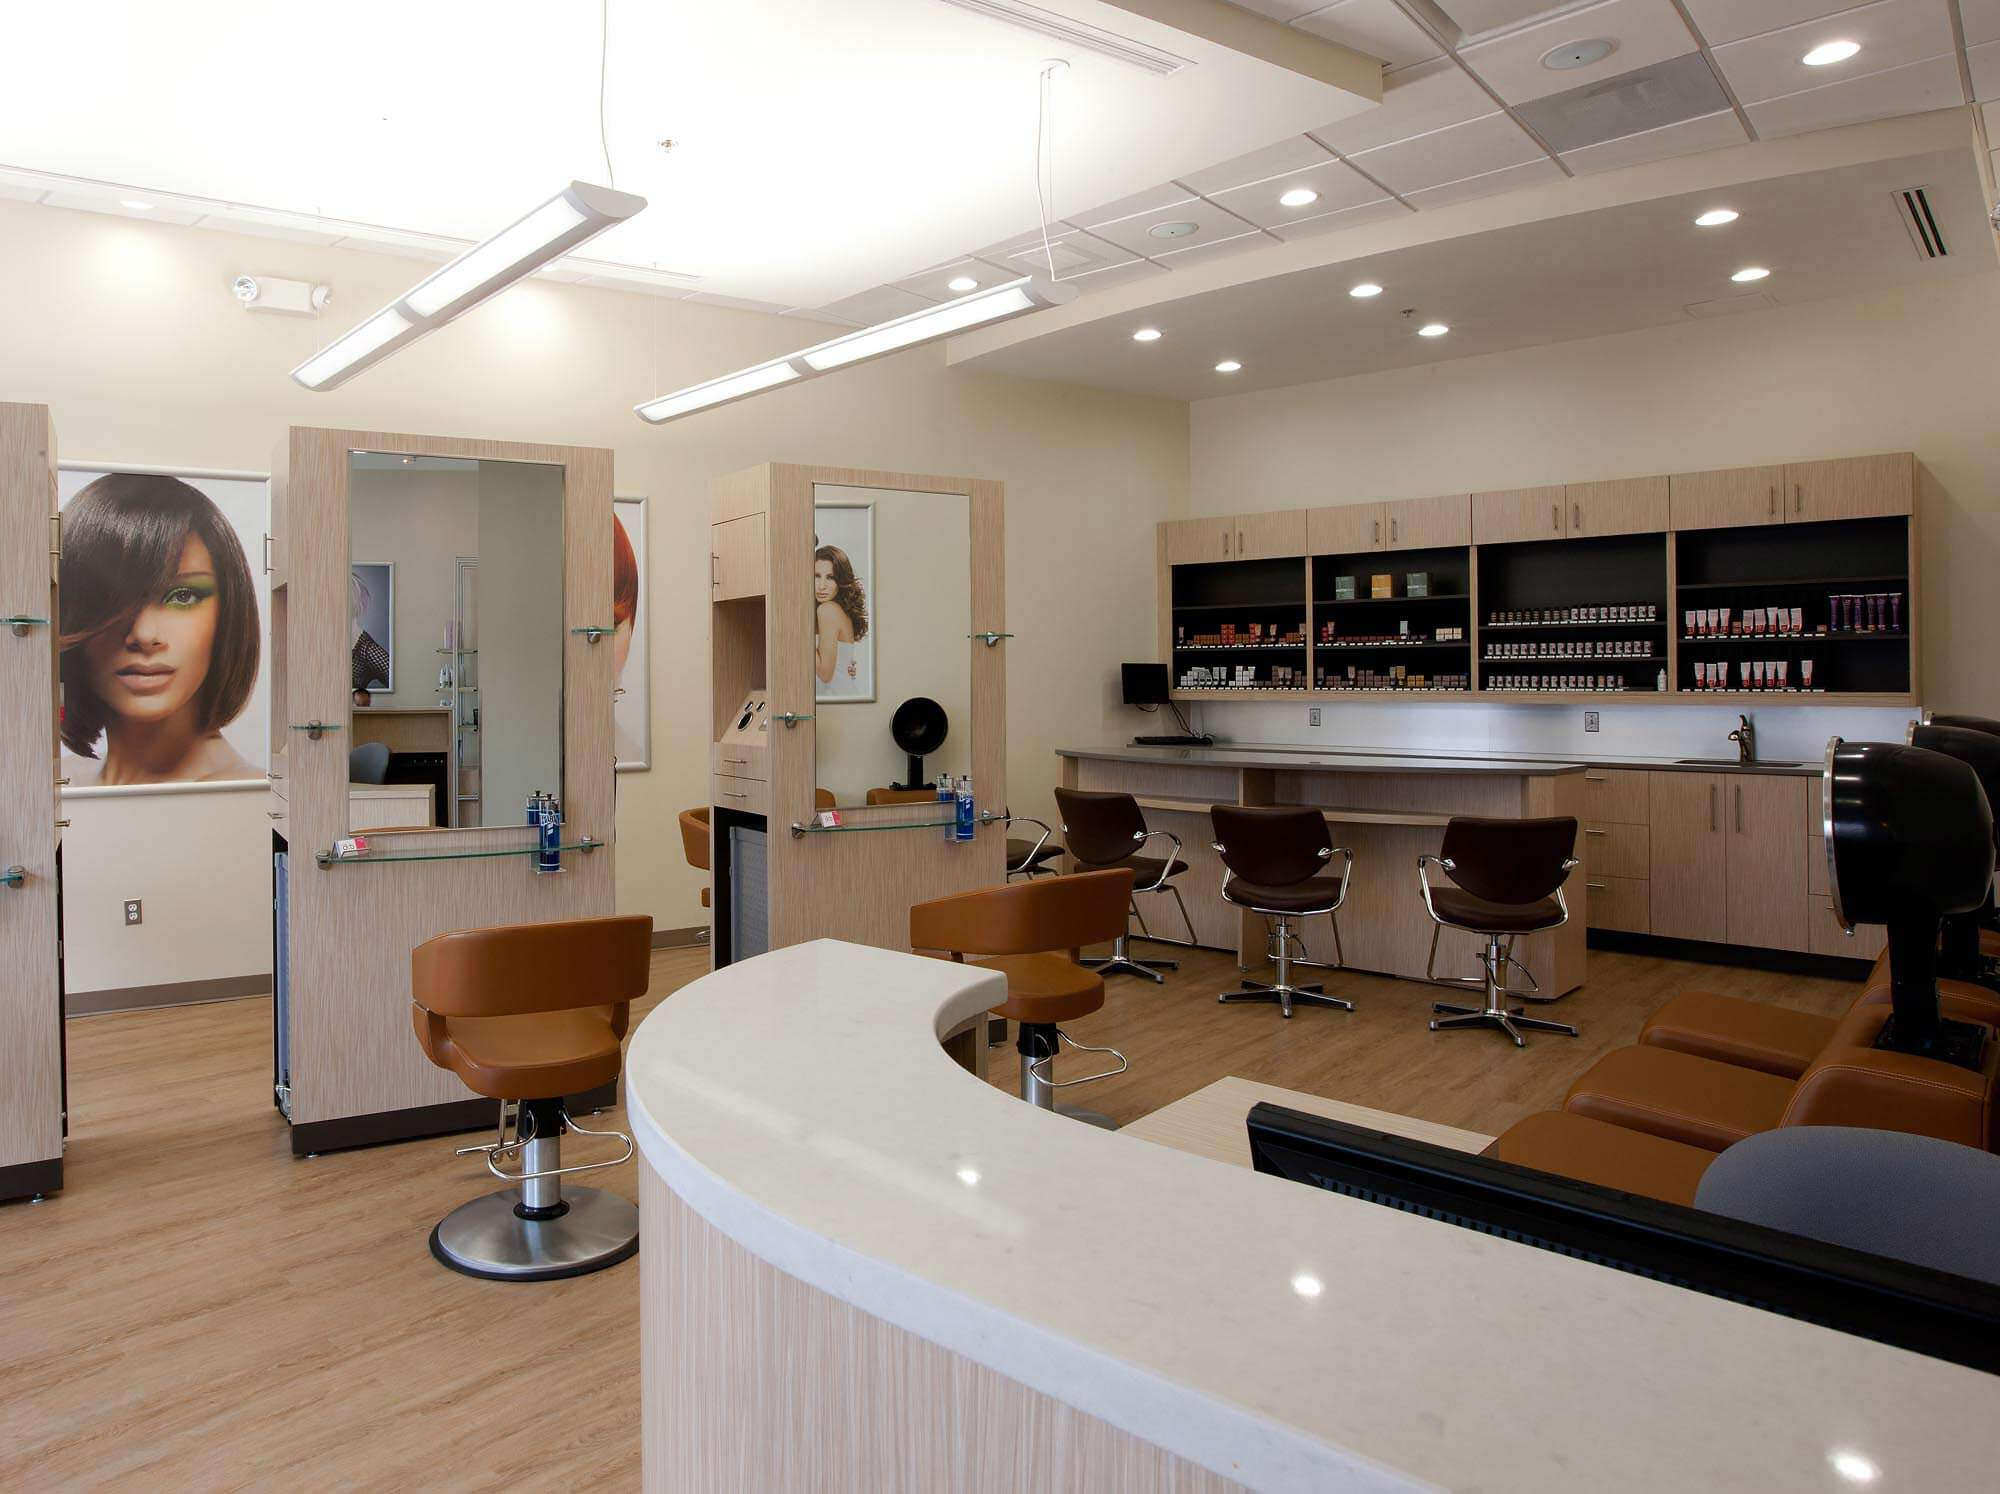 Salon Remodels & Construction